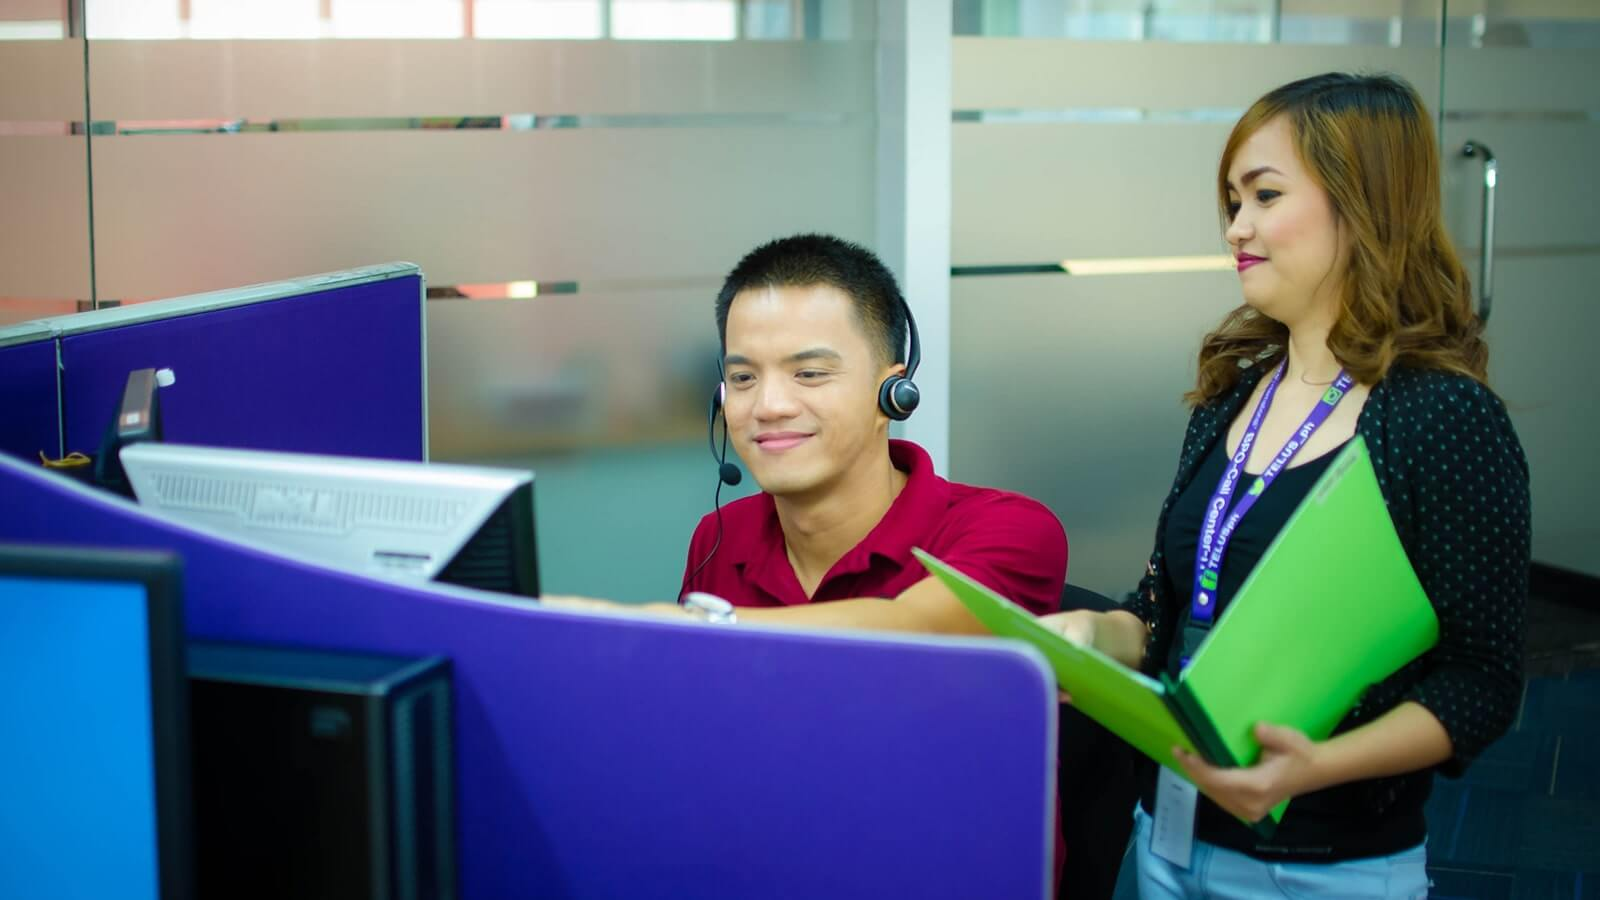 A call center employee showing something on his screen to his boss